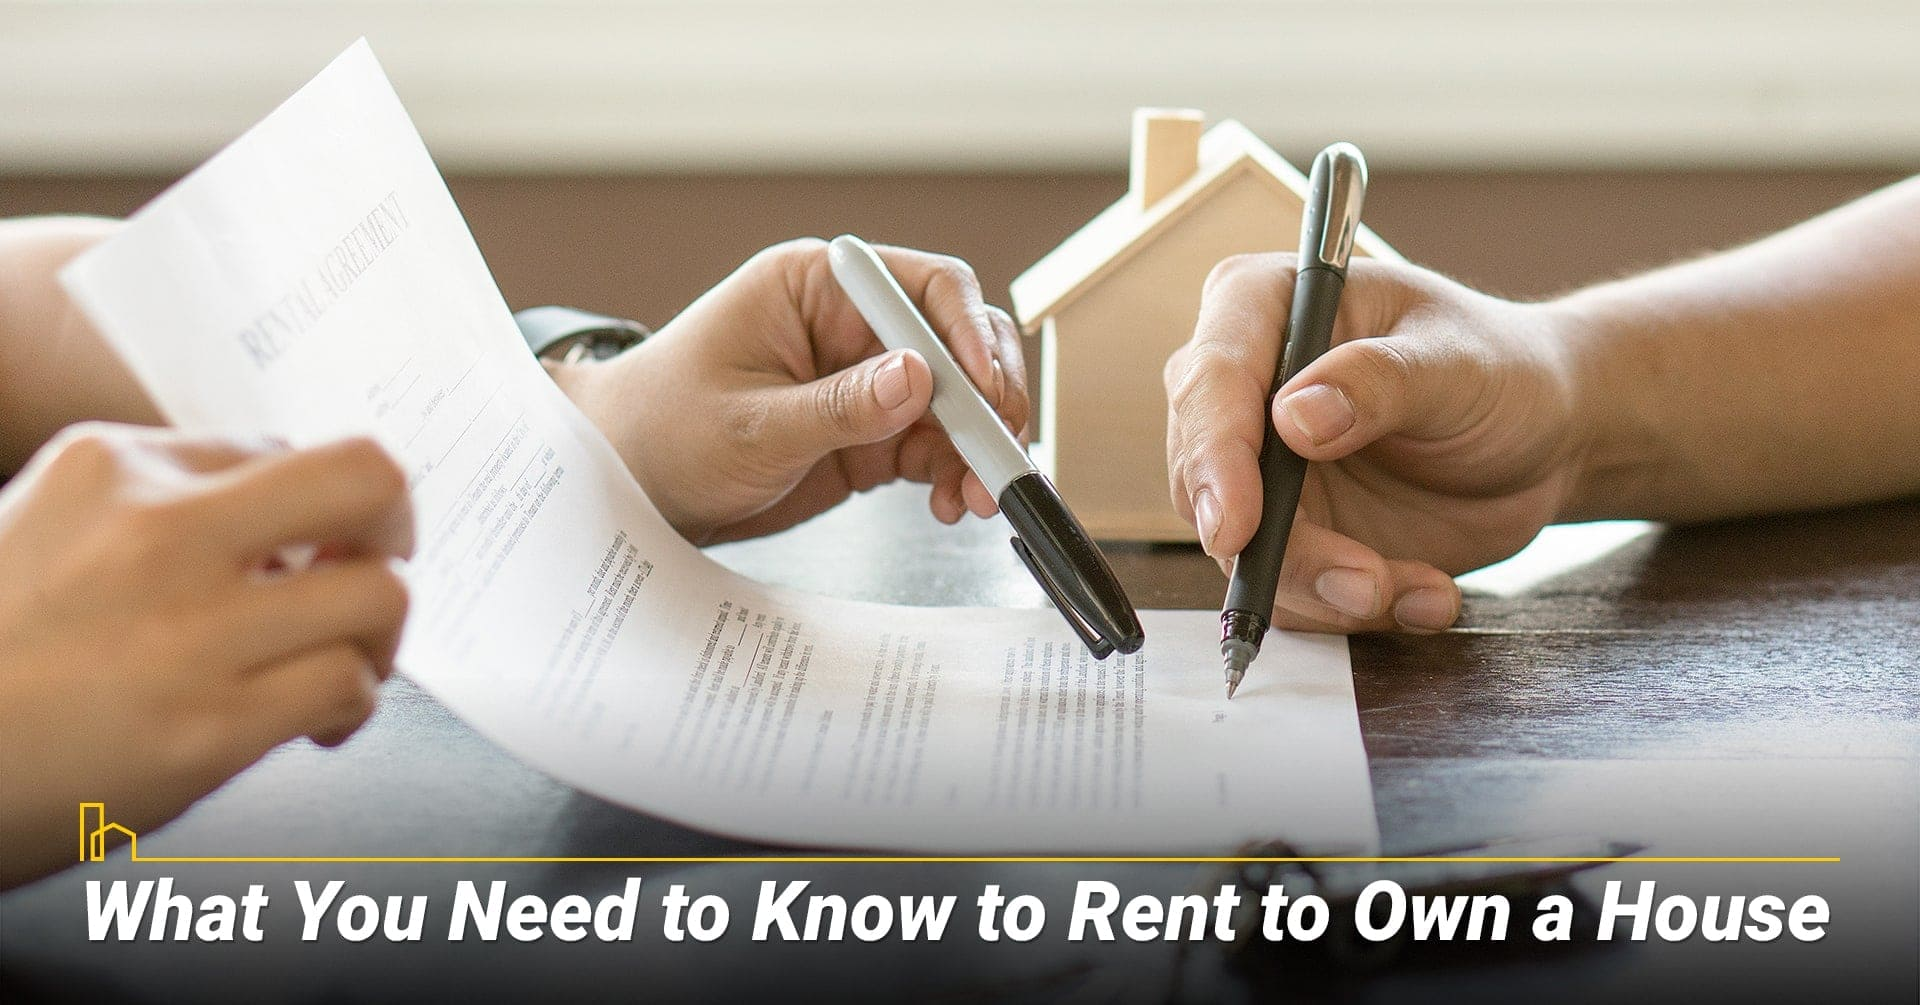 What You Need to Know to Rent to Own a House, important things to consider about rent to own a home